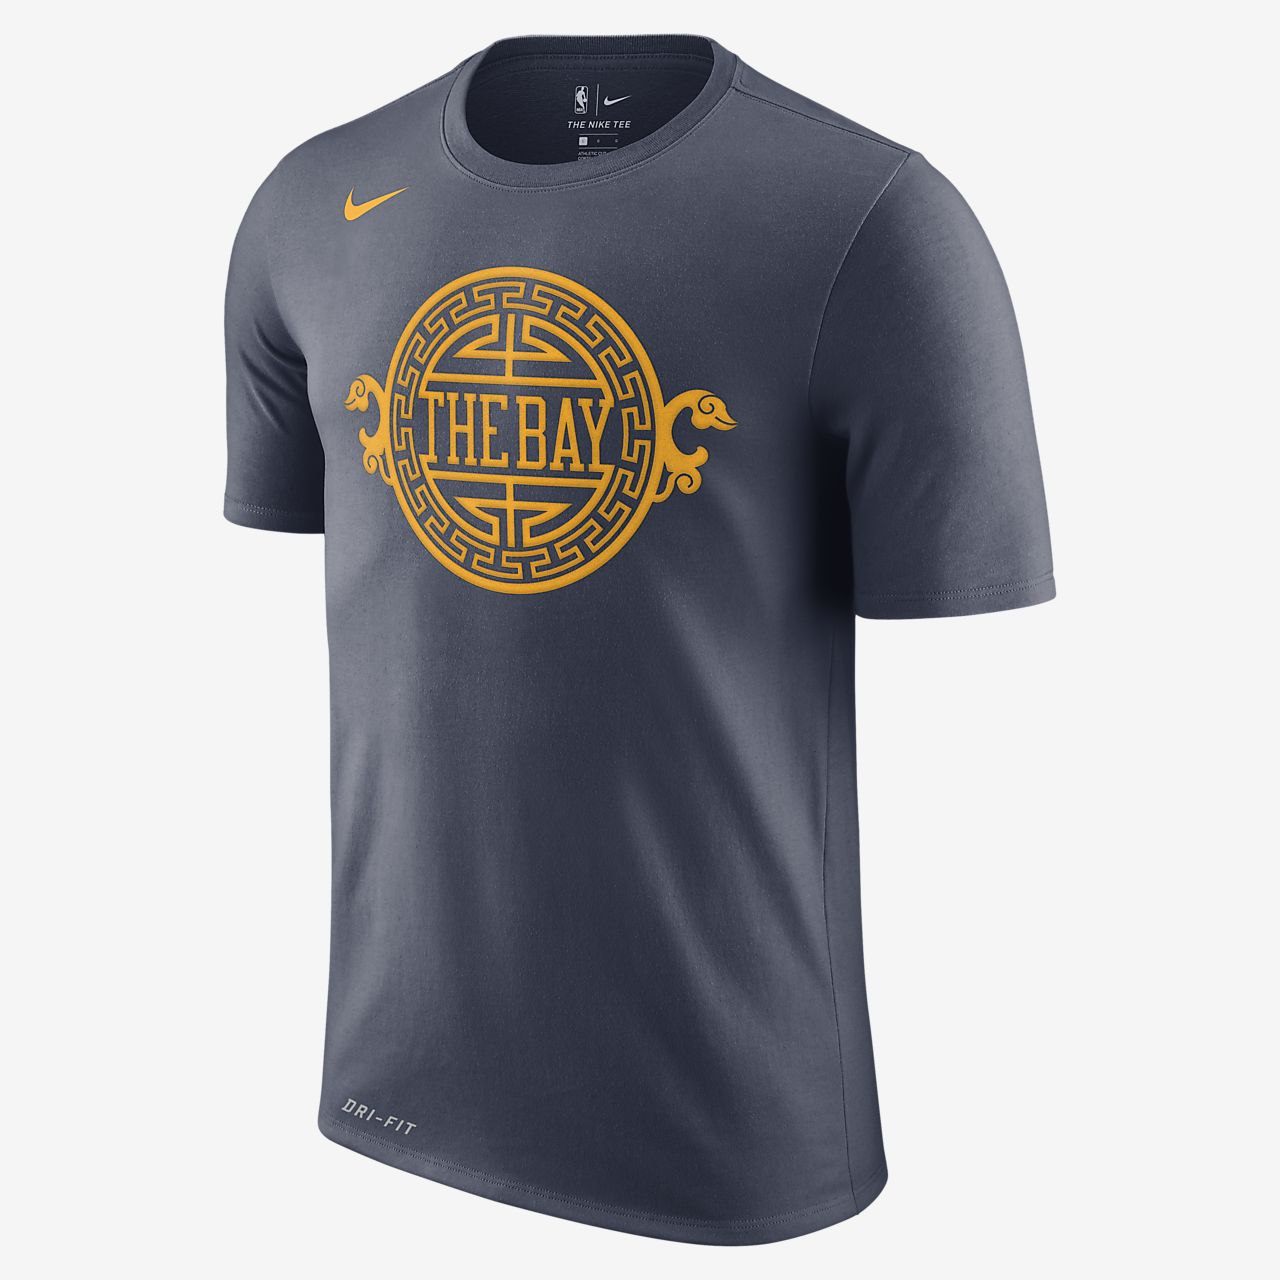 8754e2e8500b1 Golden State Warriors City Edition Nike Dri-FIT Men s NBA T-Shirt ...